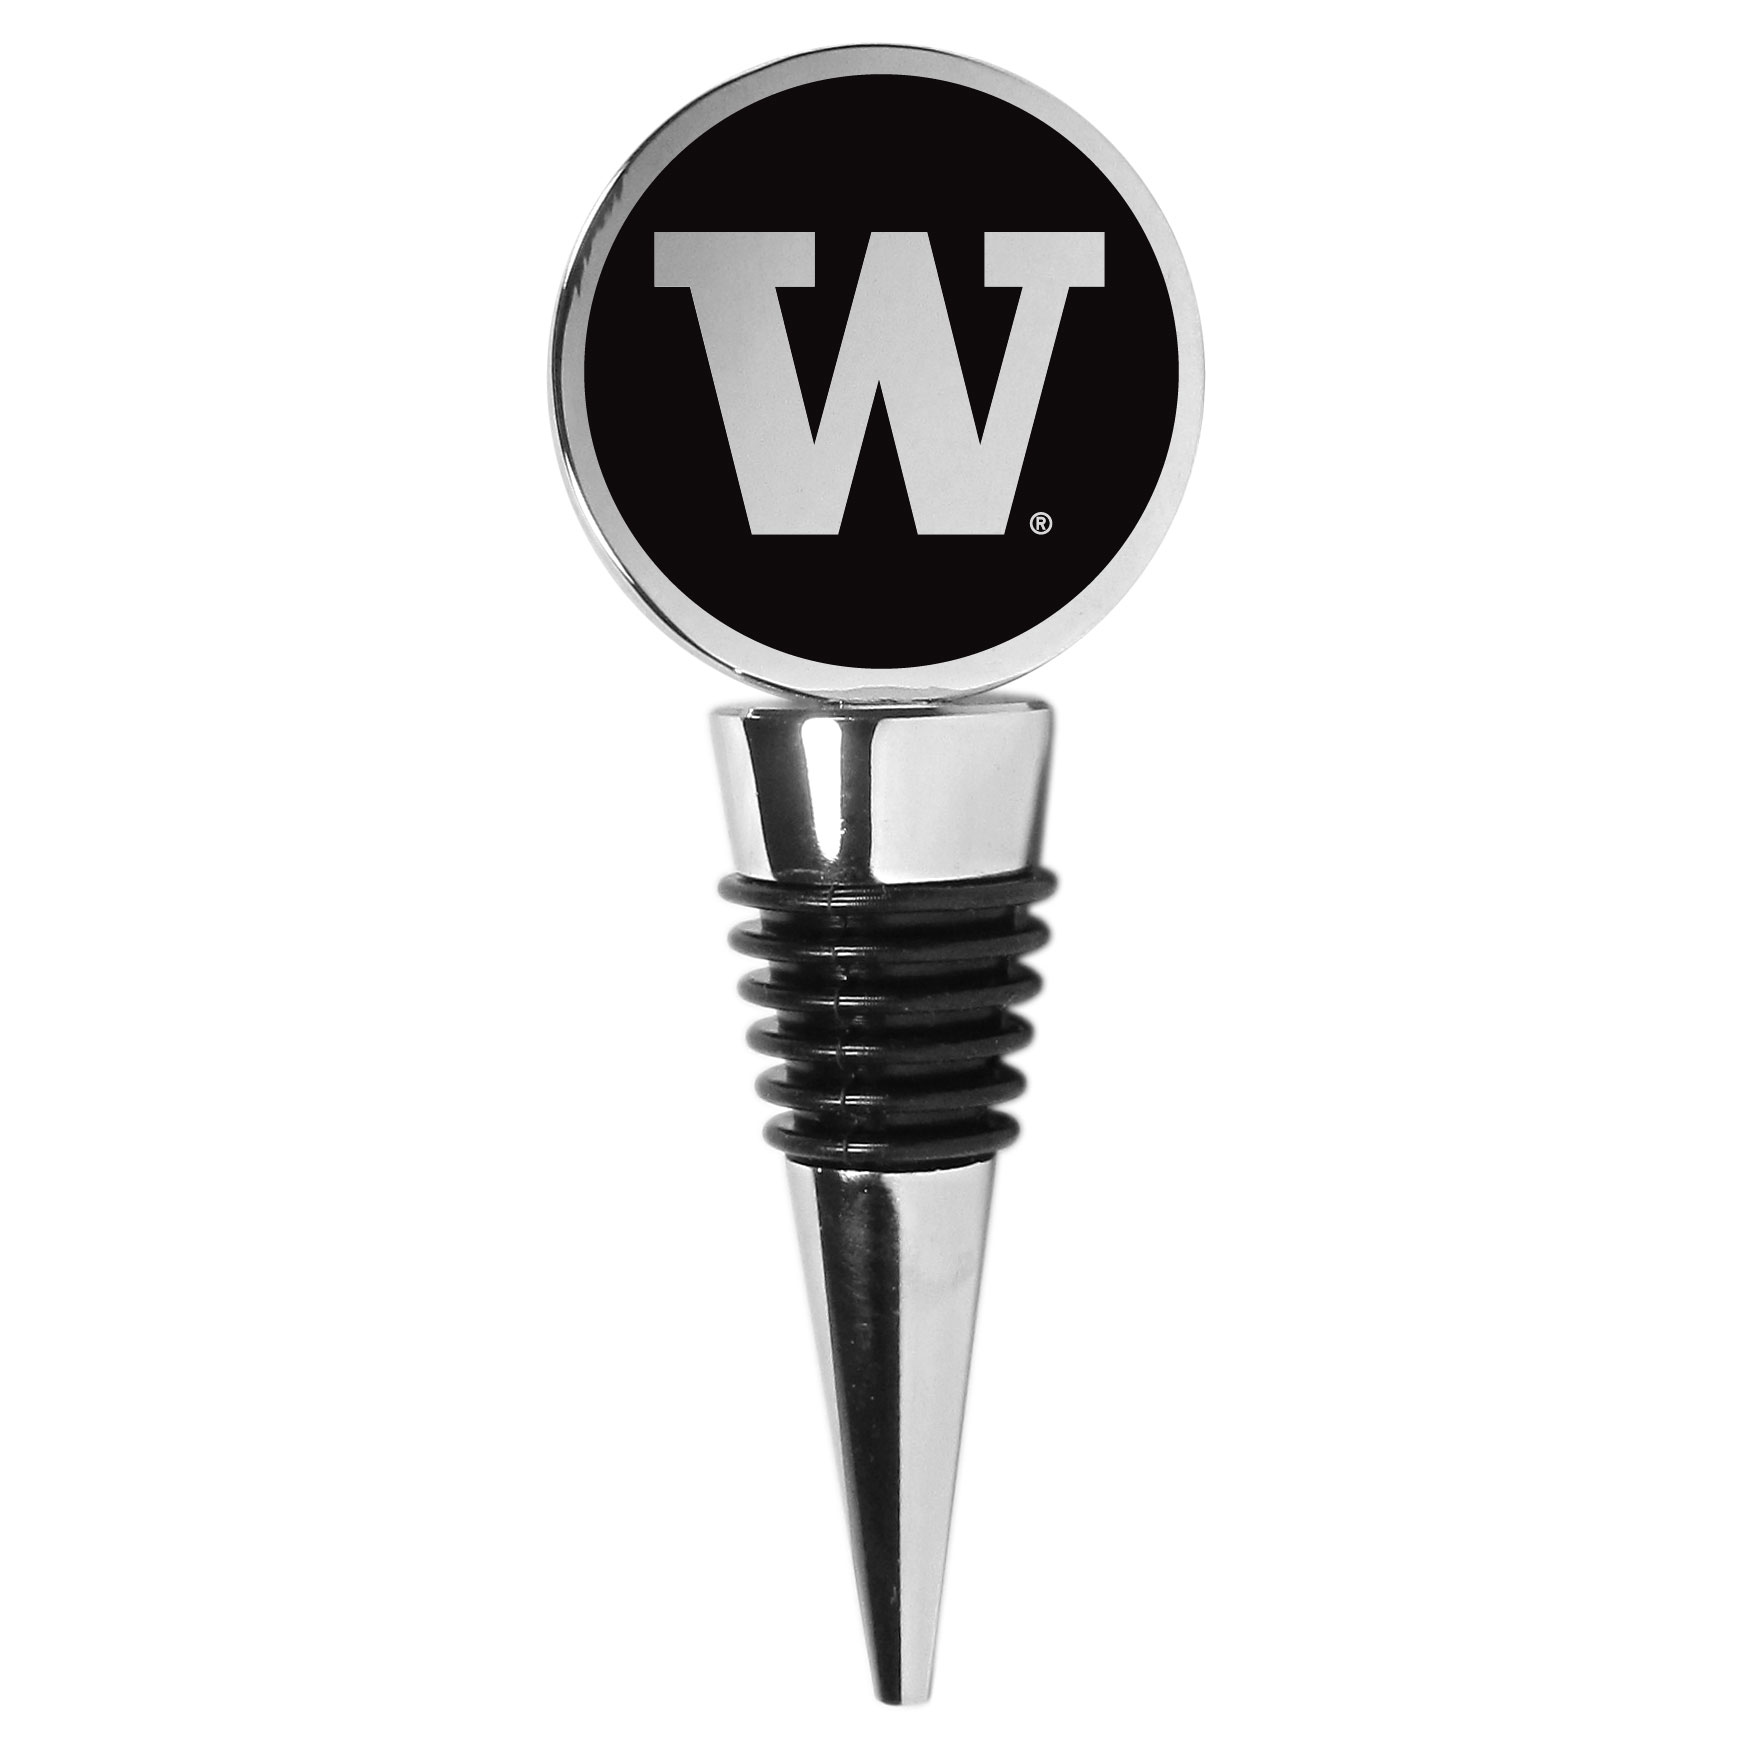 Washington Huskies Wine Stopper - This beautiful Washington Huskies wine stopper has a classy monochromatic logo on the top disc. The tapered rubber rings allow you to create a tight seal on multiple sizes of wine bottles so that you are able to preserve the wine for later enjoyment. This a perfect addition to a game day celebration.